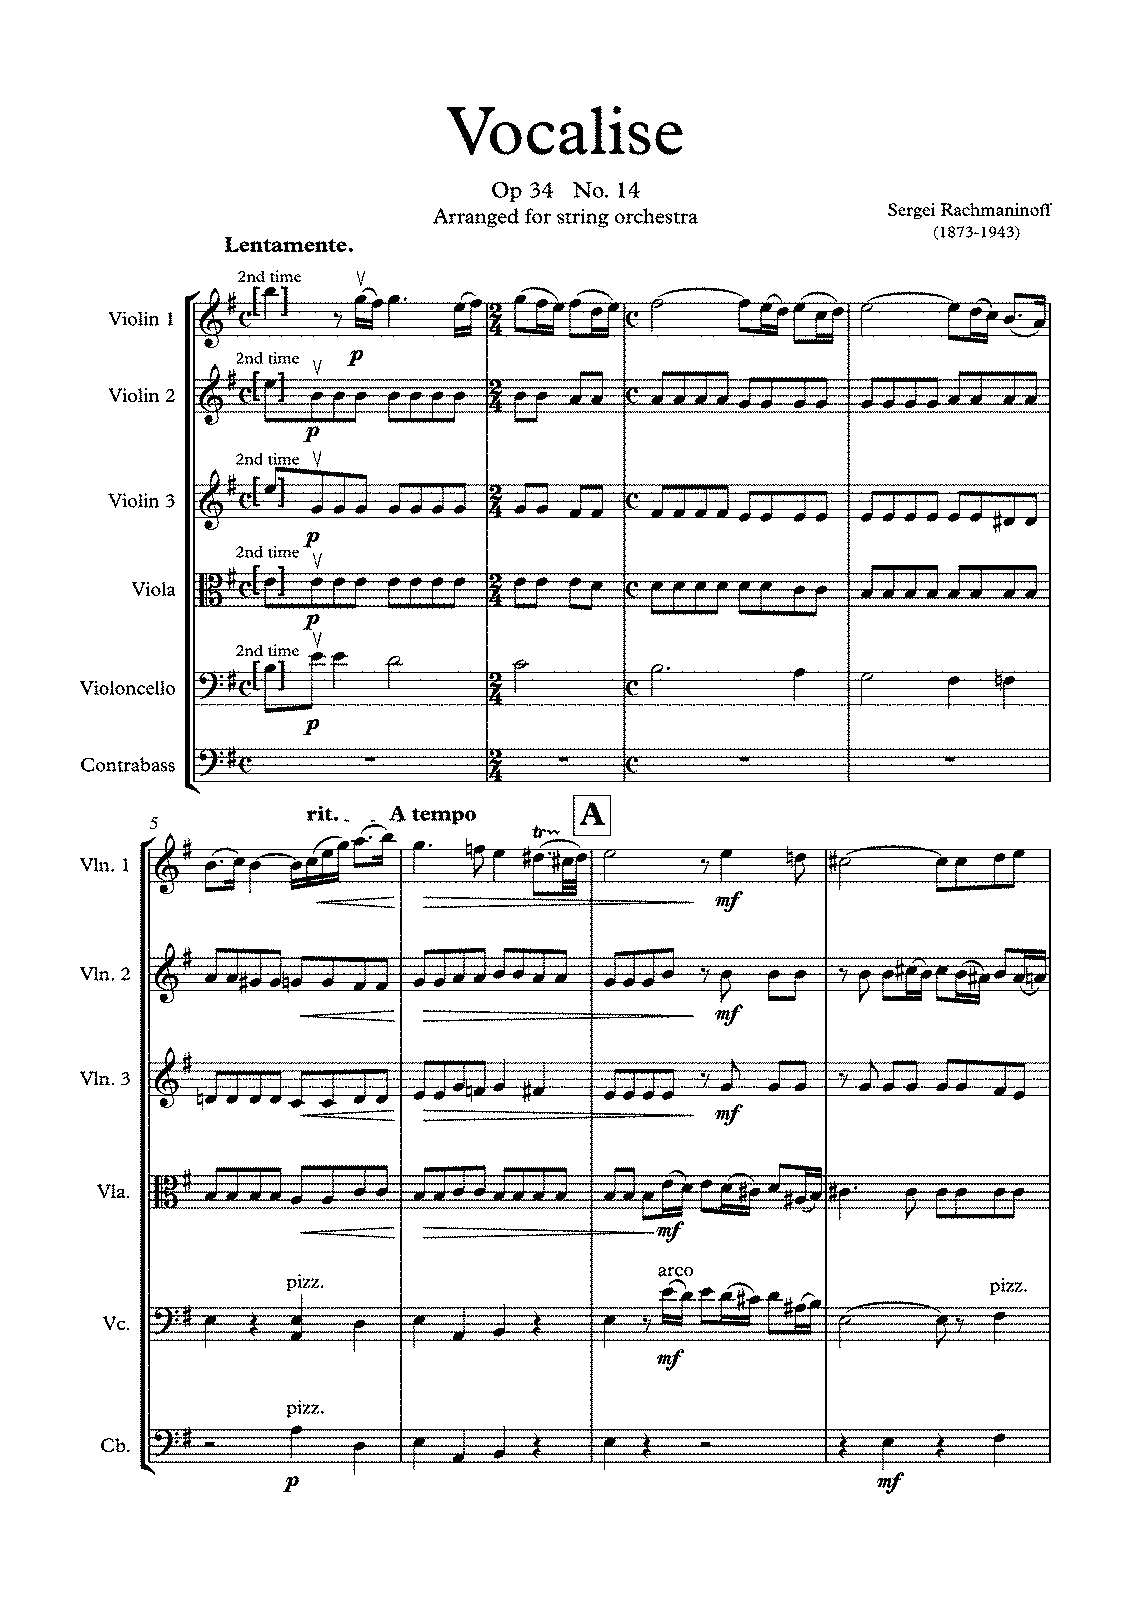 PMLP17852-Vocalise - Full Score.pdf